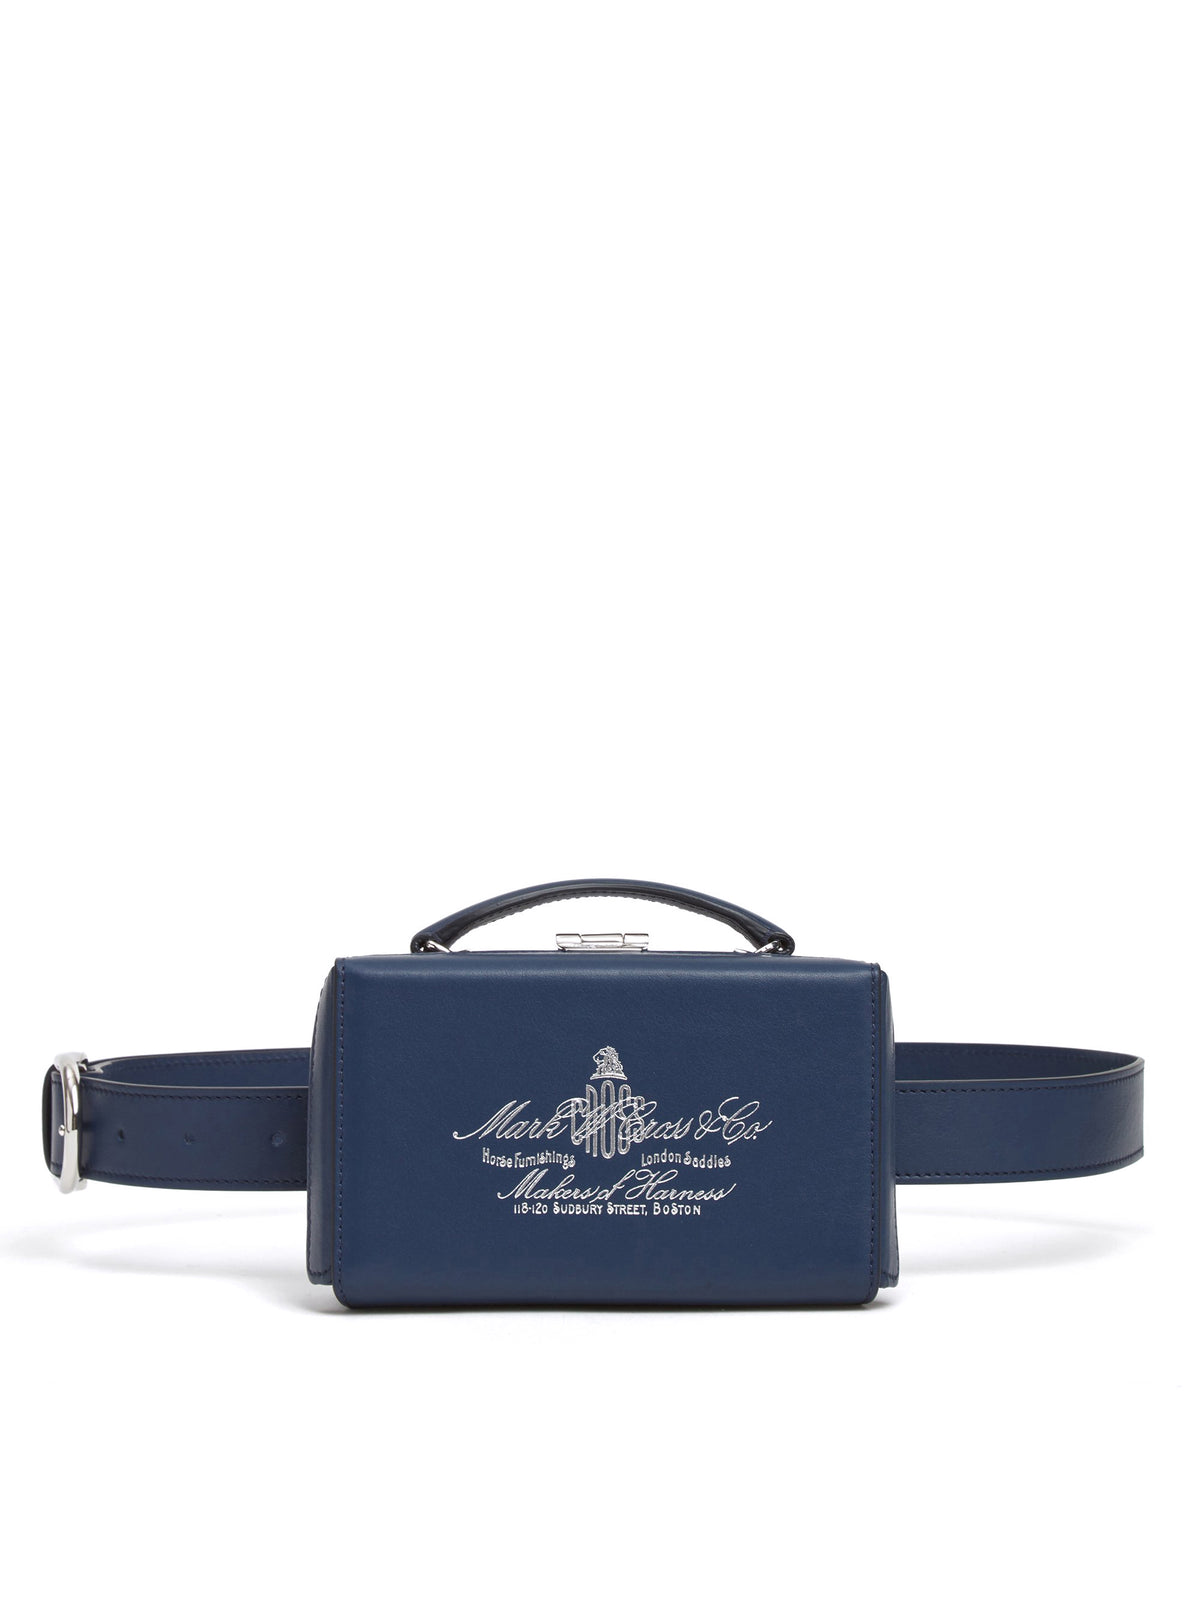 Mark Cross Grace Historical Logo Leather Belt Bag Soft Calf Navy Front